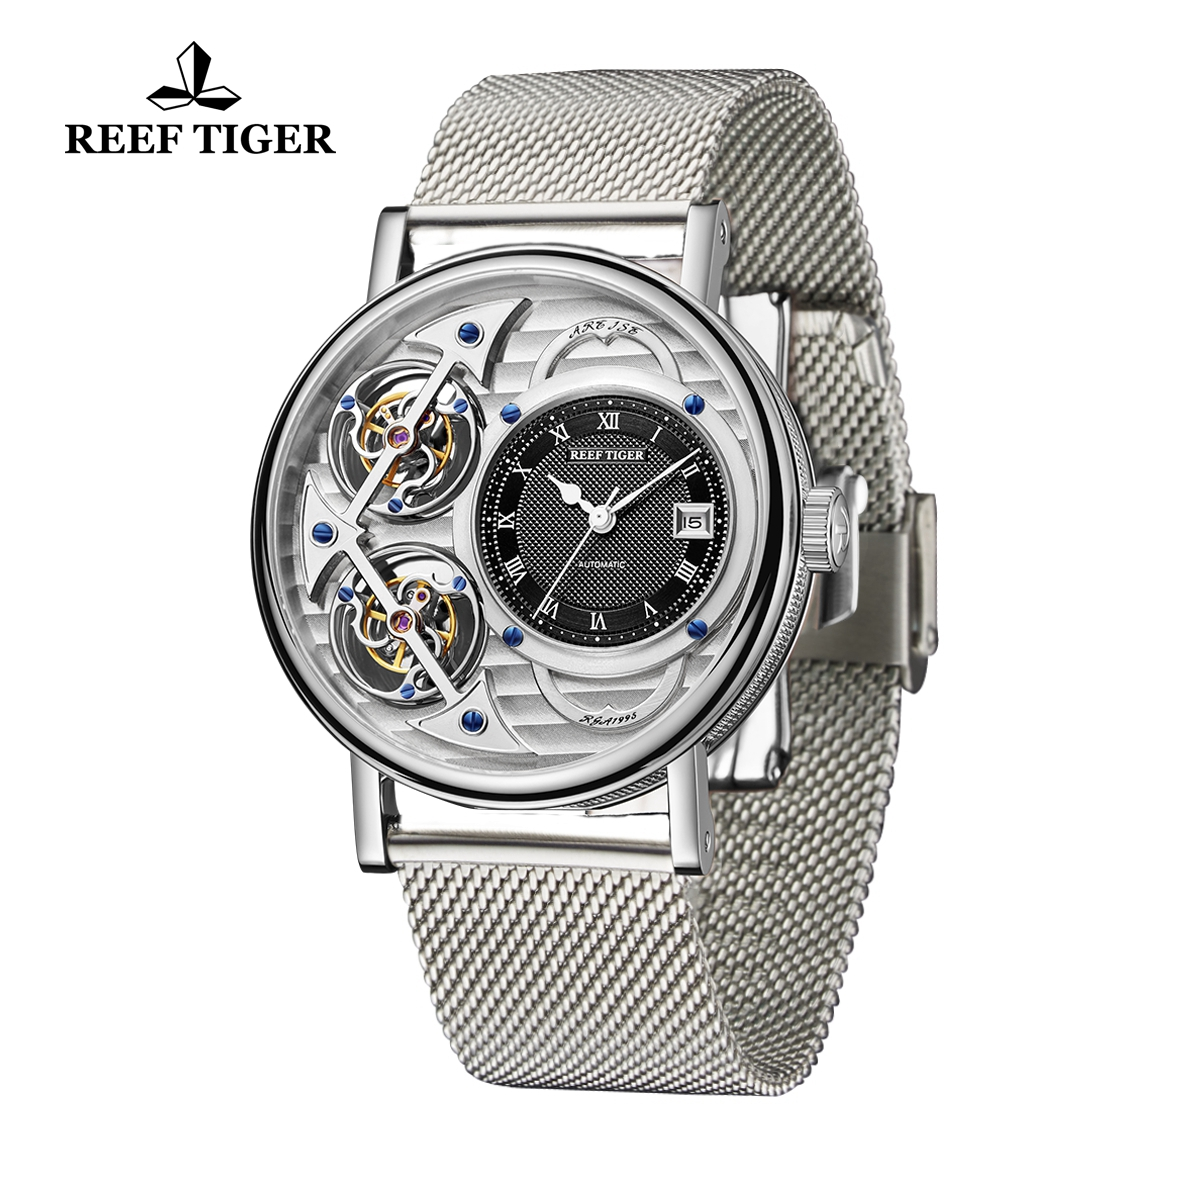 Reef Tiger Artist Magician Fashion Men\'s Steel Watches Skeleton Dial Automatic Watch With Date RGA1995-YSYB